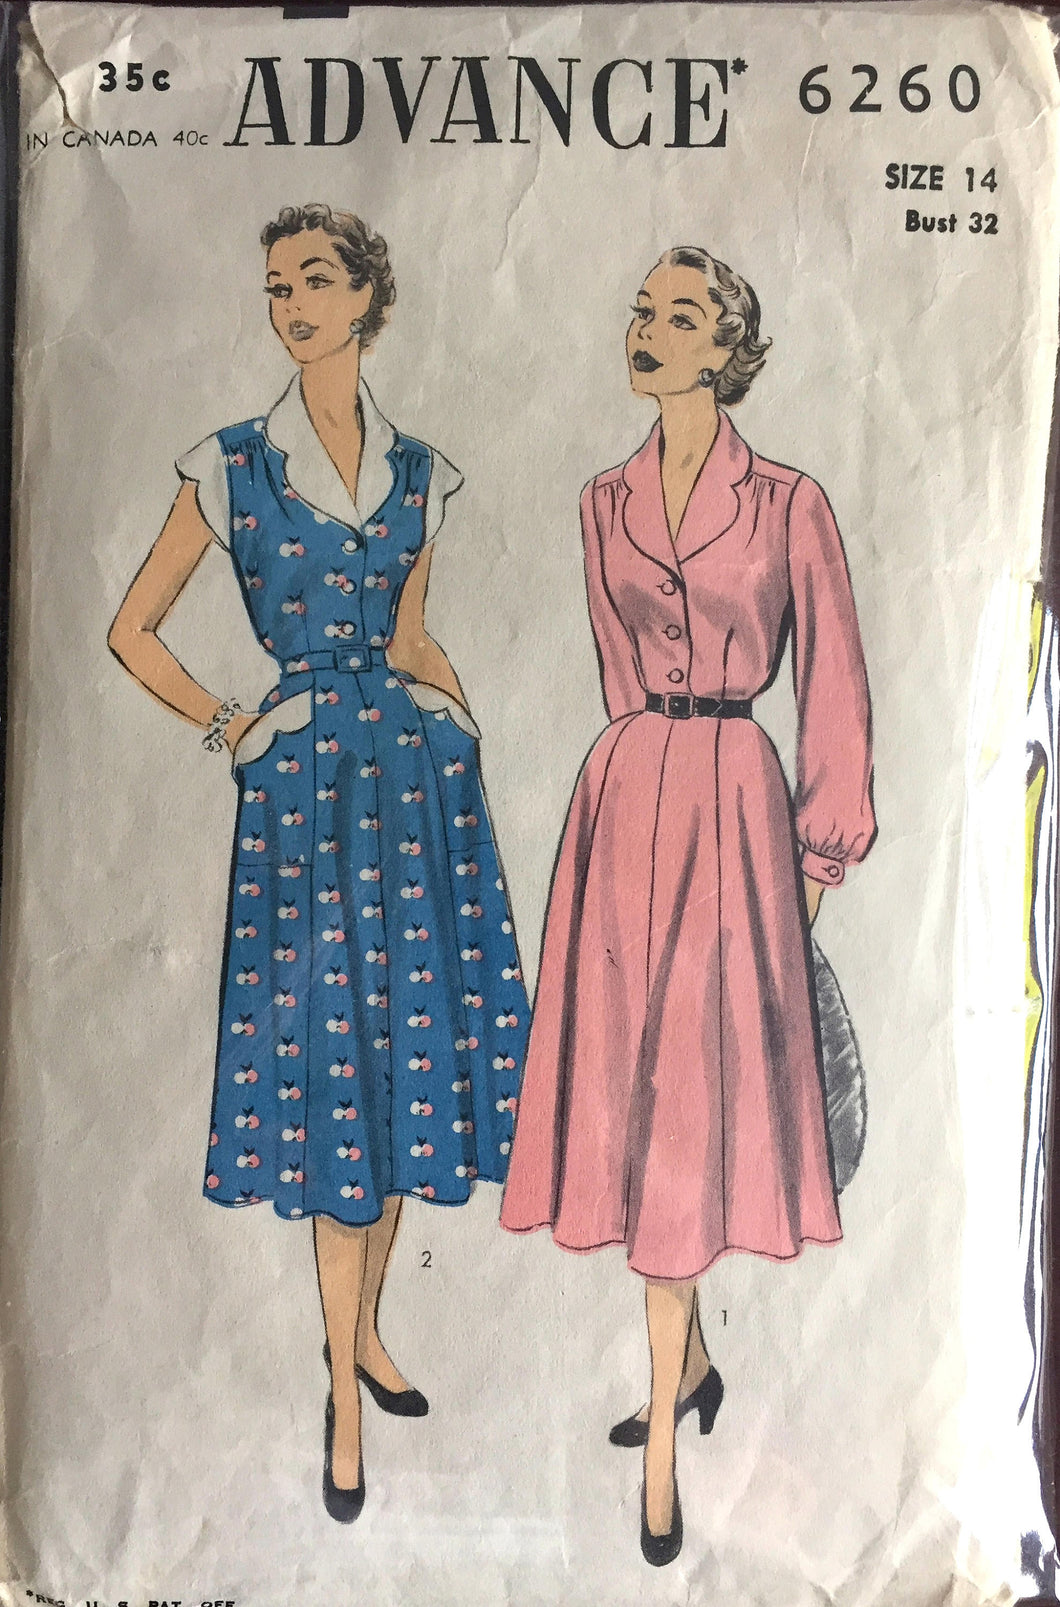 1950's Advance One-Piece Shirt-waist Dress with Scalloped Collar, Sleeves, and Trim Pattern - Bust 32